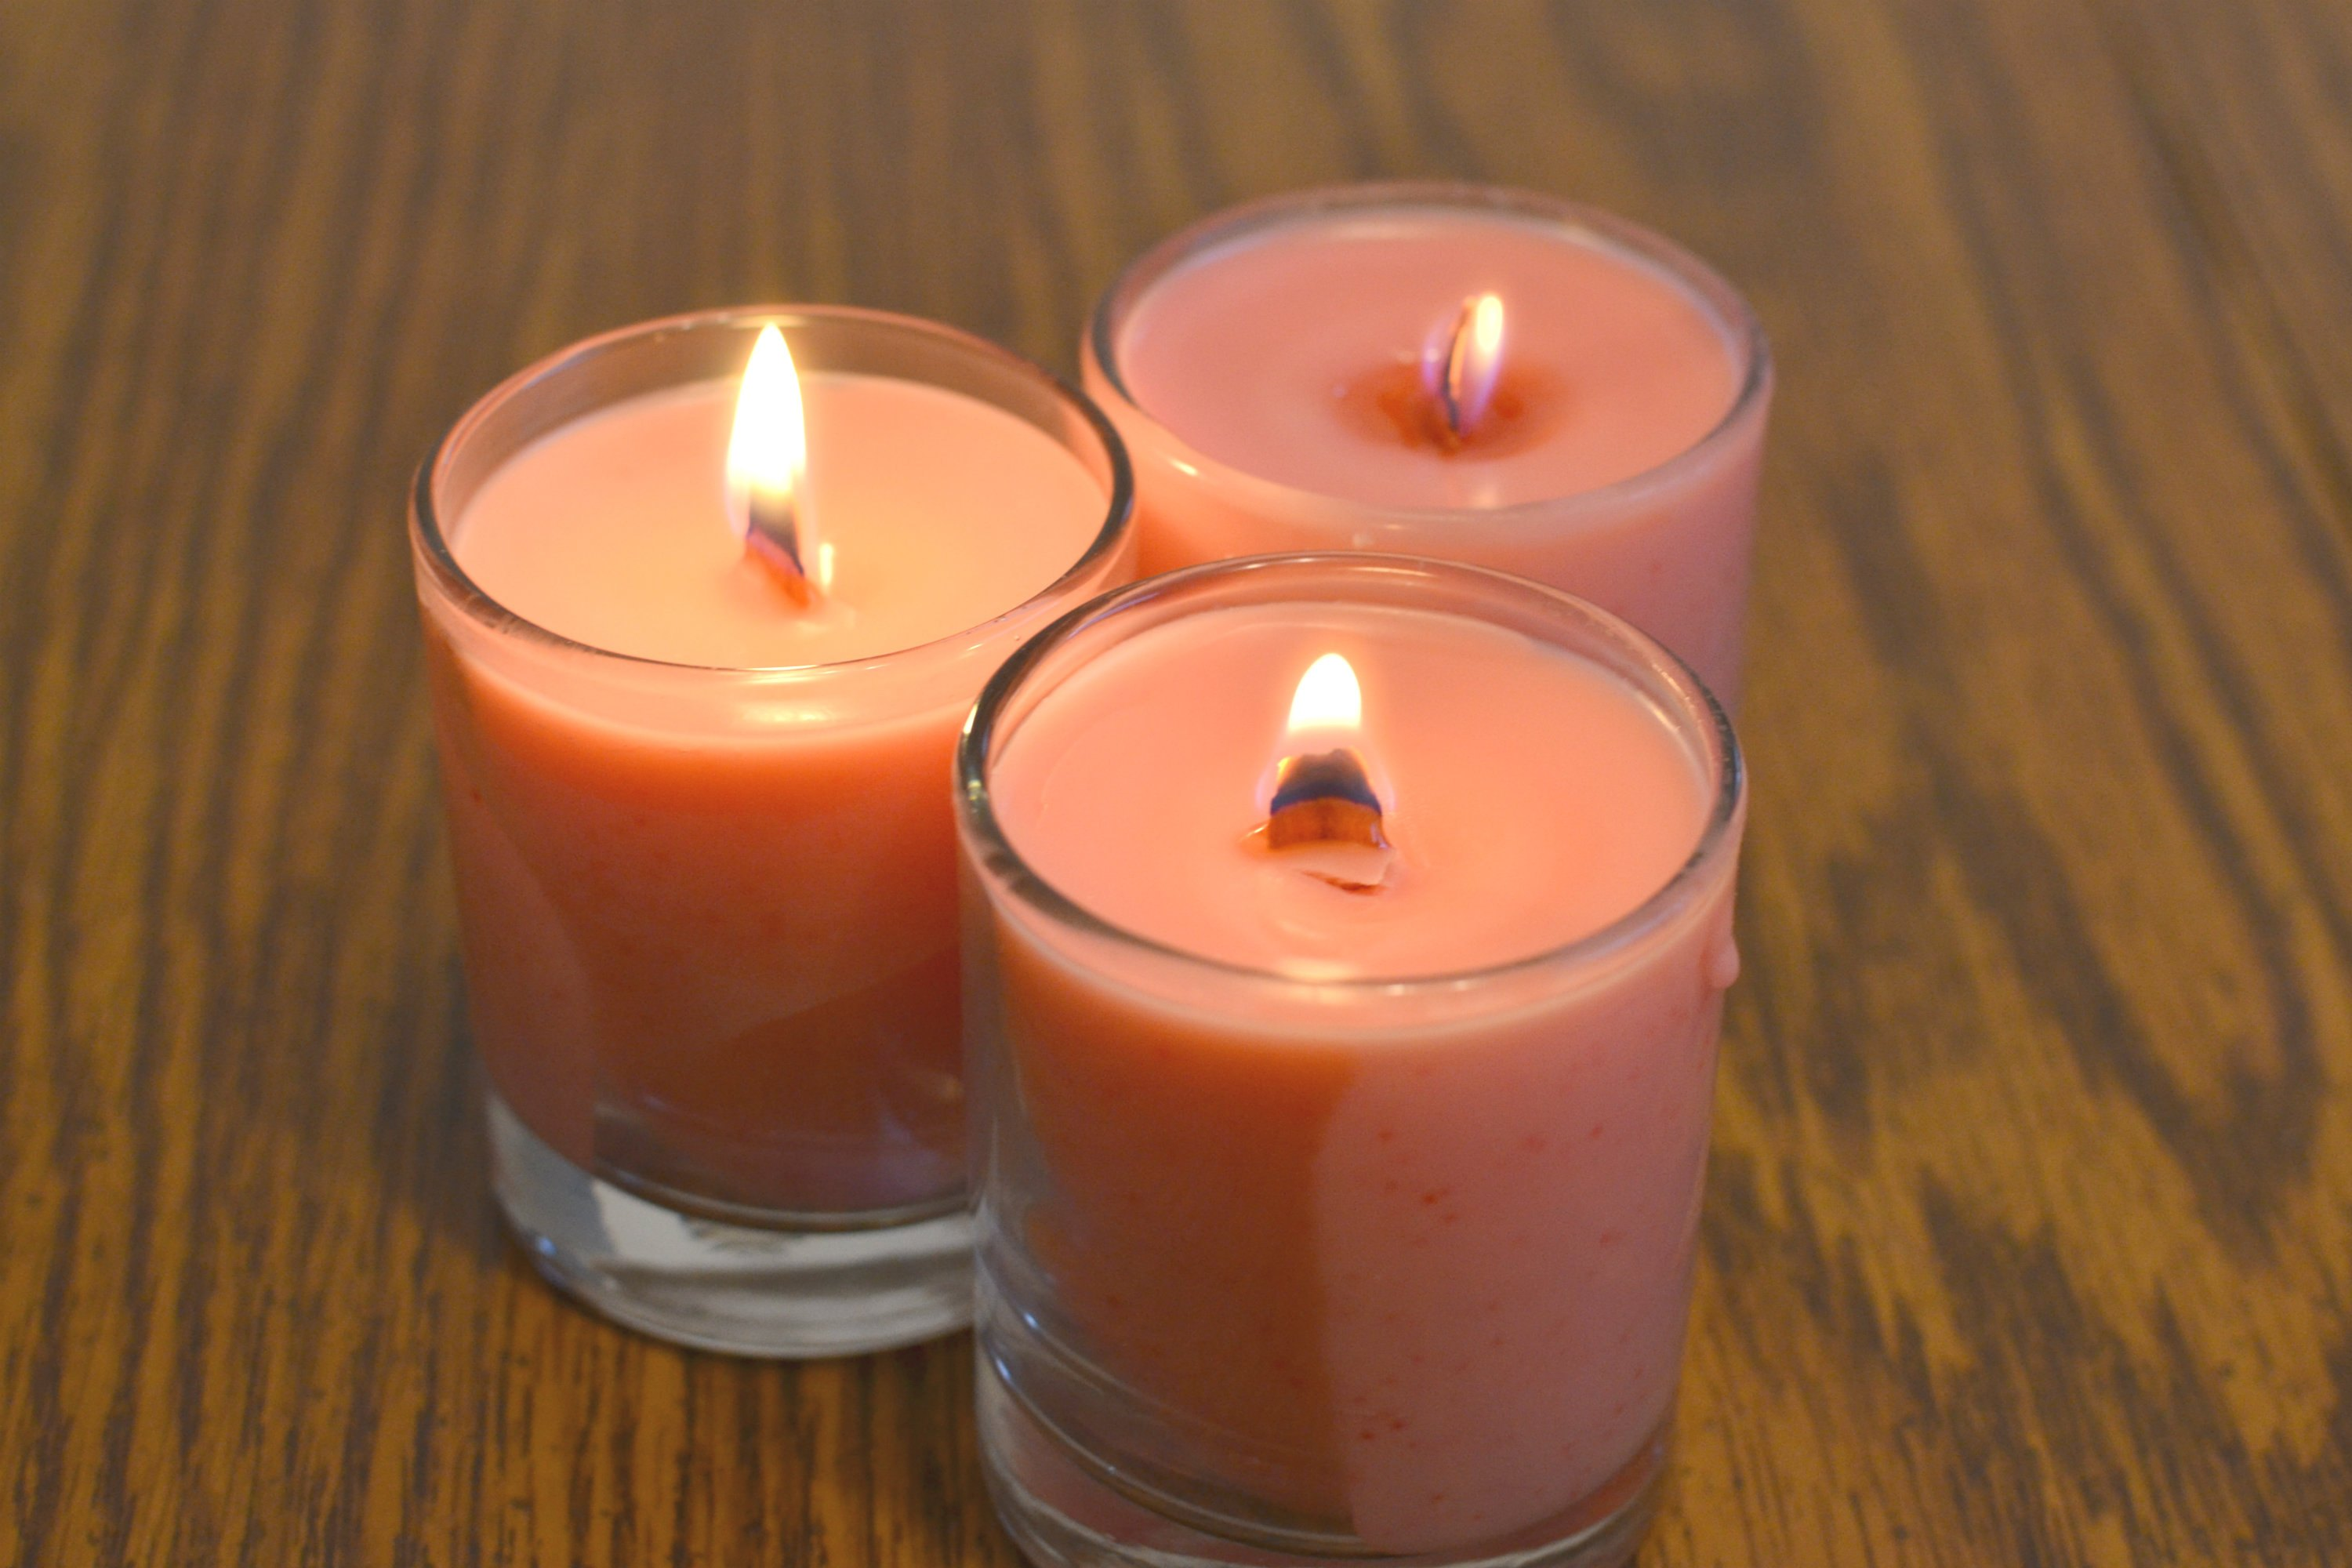 How To Make A Wood Wick Candle By Yourself With Pictures